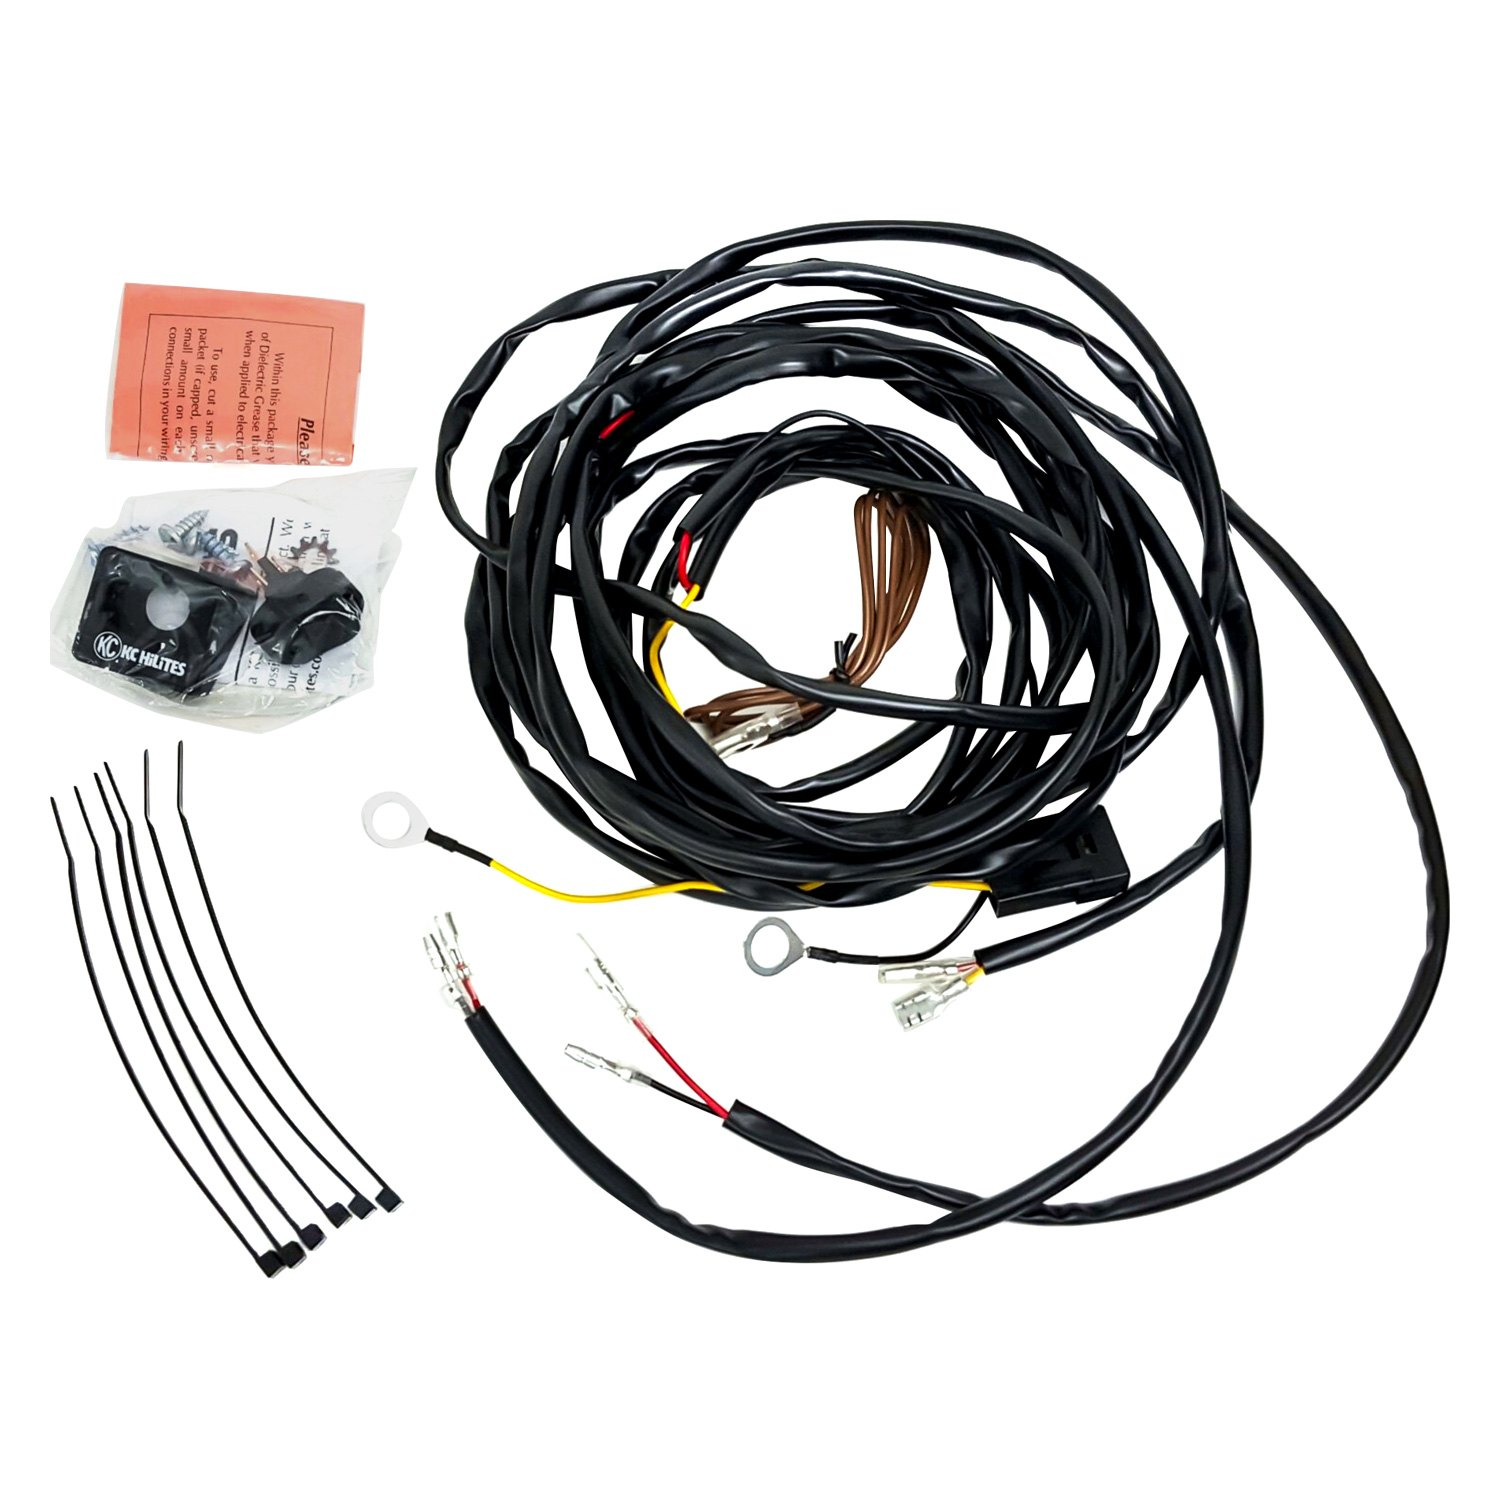 Kc Light Wiring Harness Just Another Diagram Blog Hilites Motorcycleid Com Rh Schematic Lights Off Road